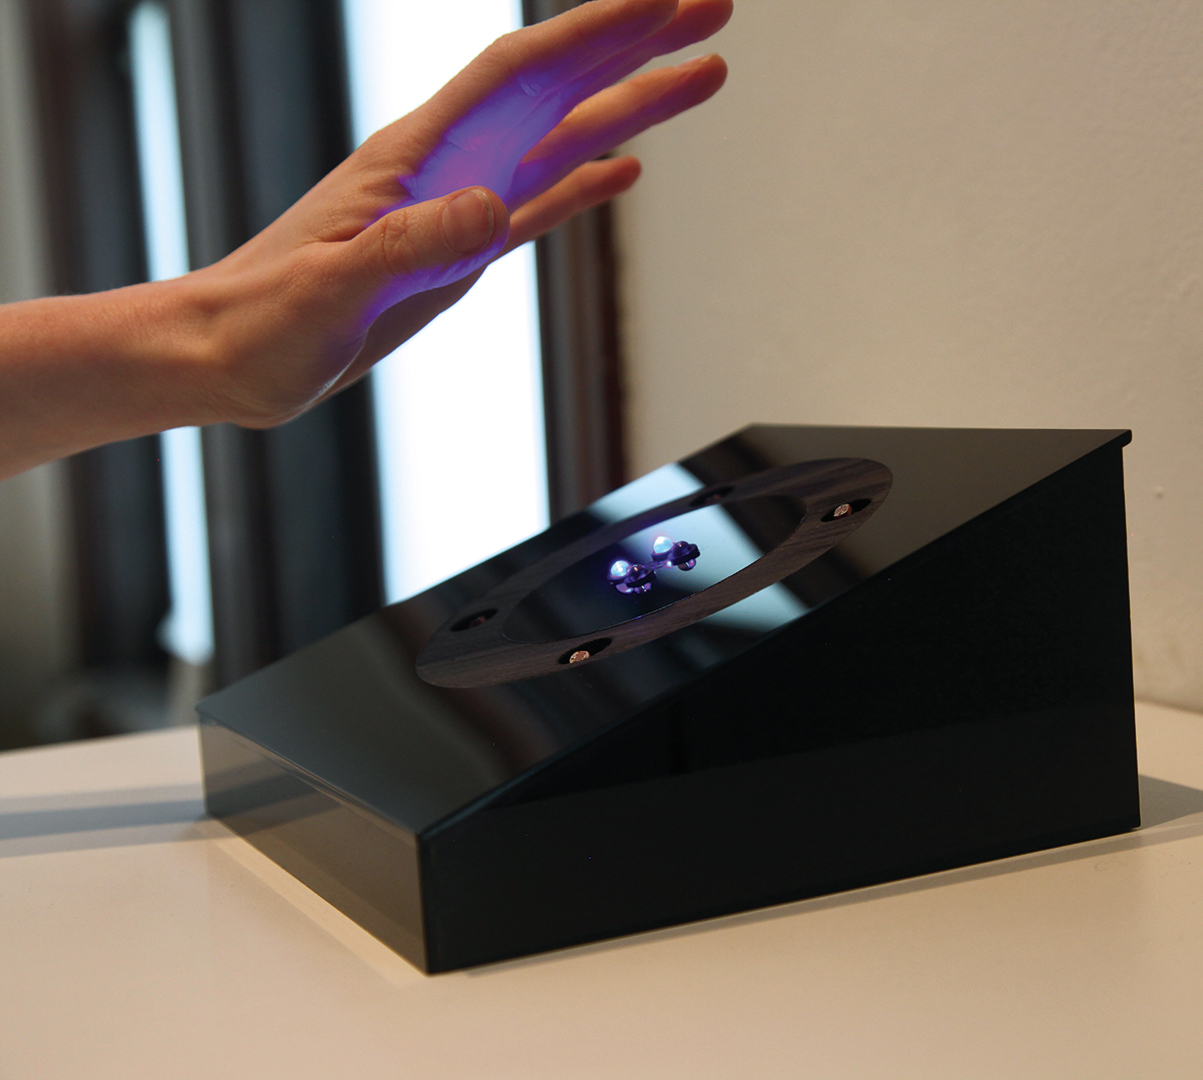 The system of reward, through LED luminosity, indicates to users that their interaction is indeed changing the audio they are hearing, and enables the user to intuit the necessary movement downward, closer to the face of the box, in order to complete the interaction.